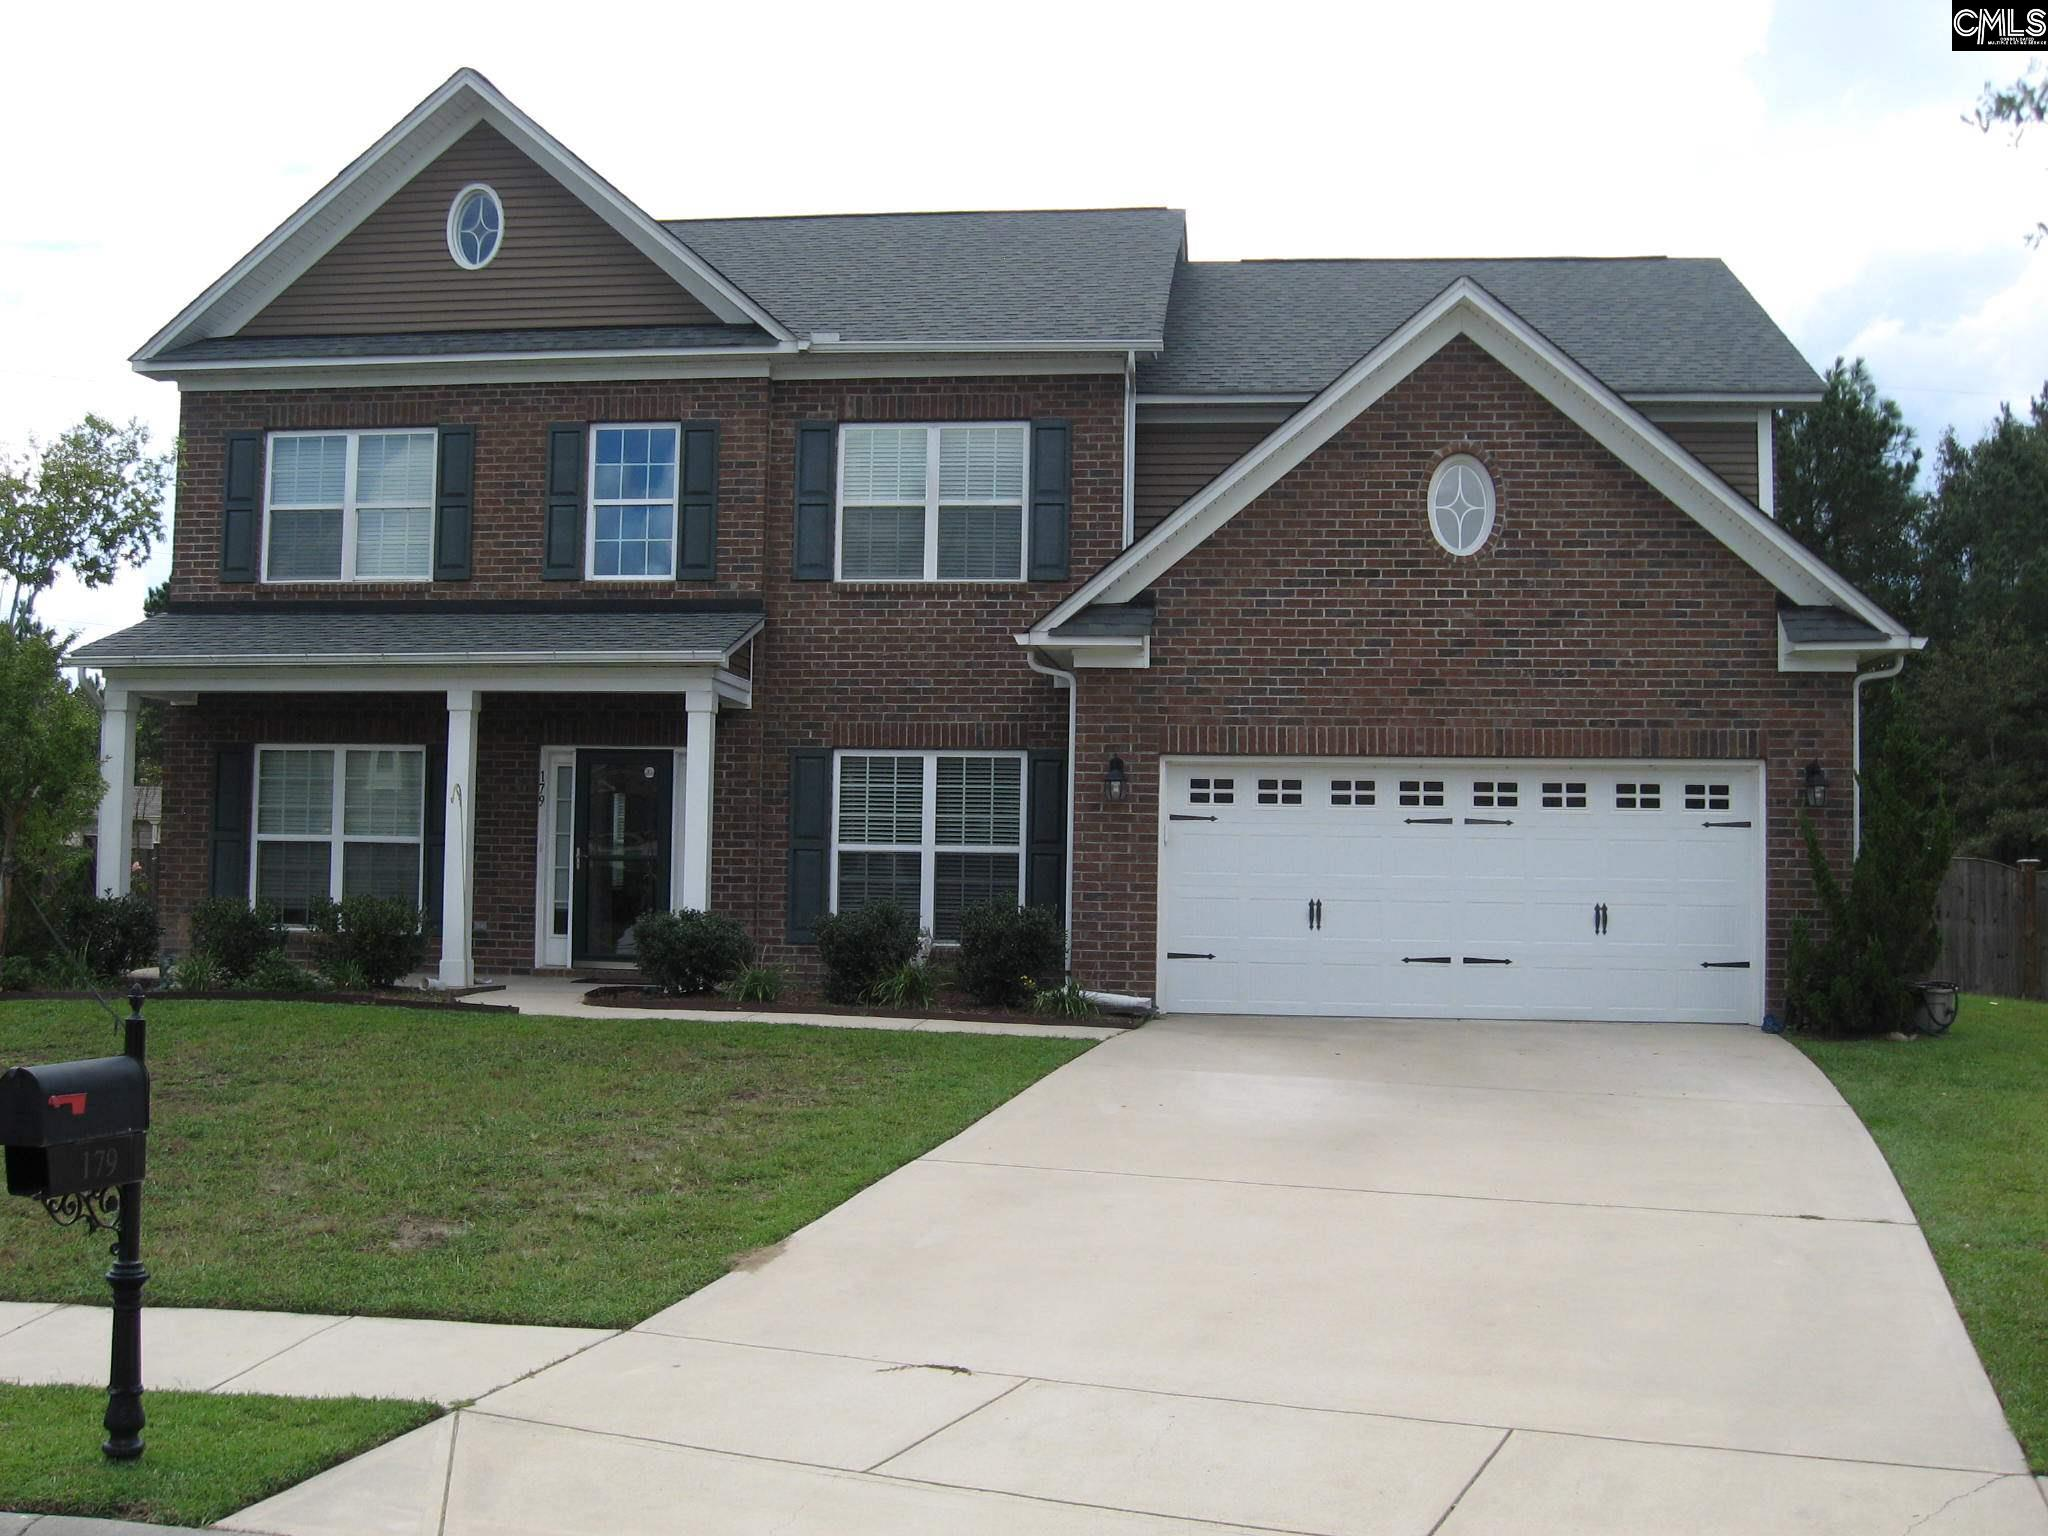 179 Churchland Columbia, SC 29229-8638